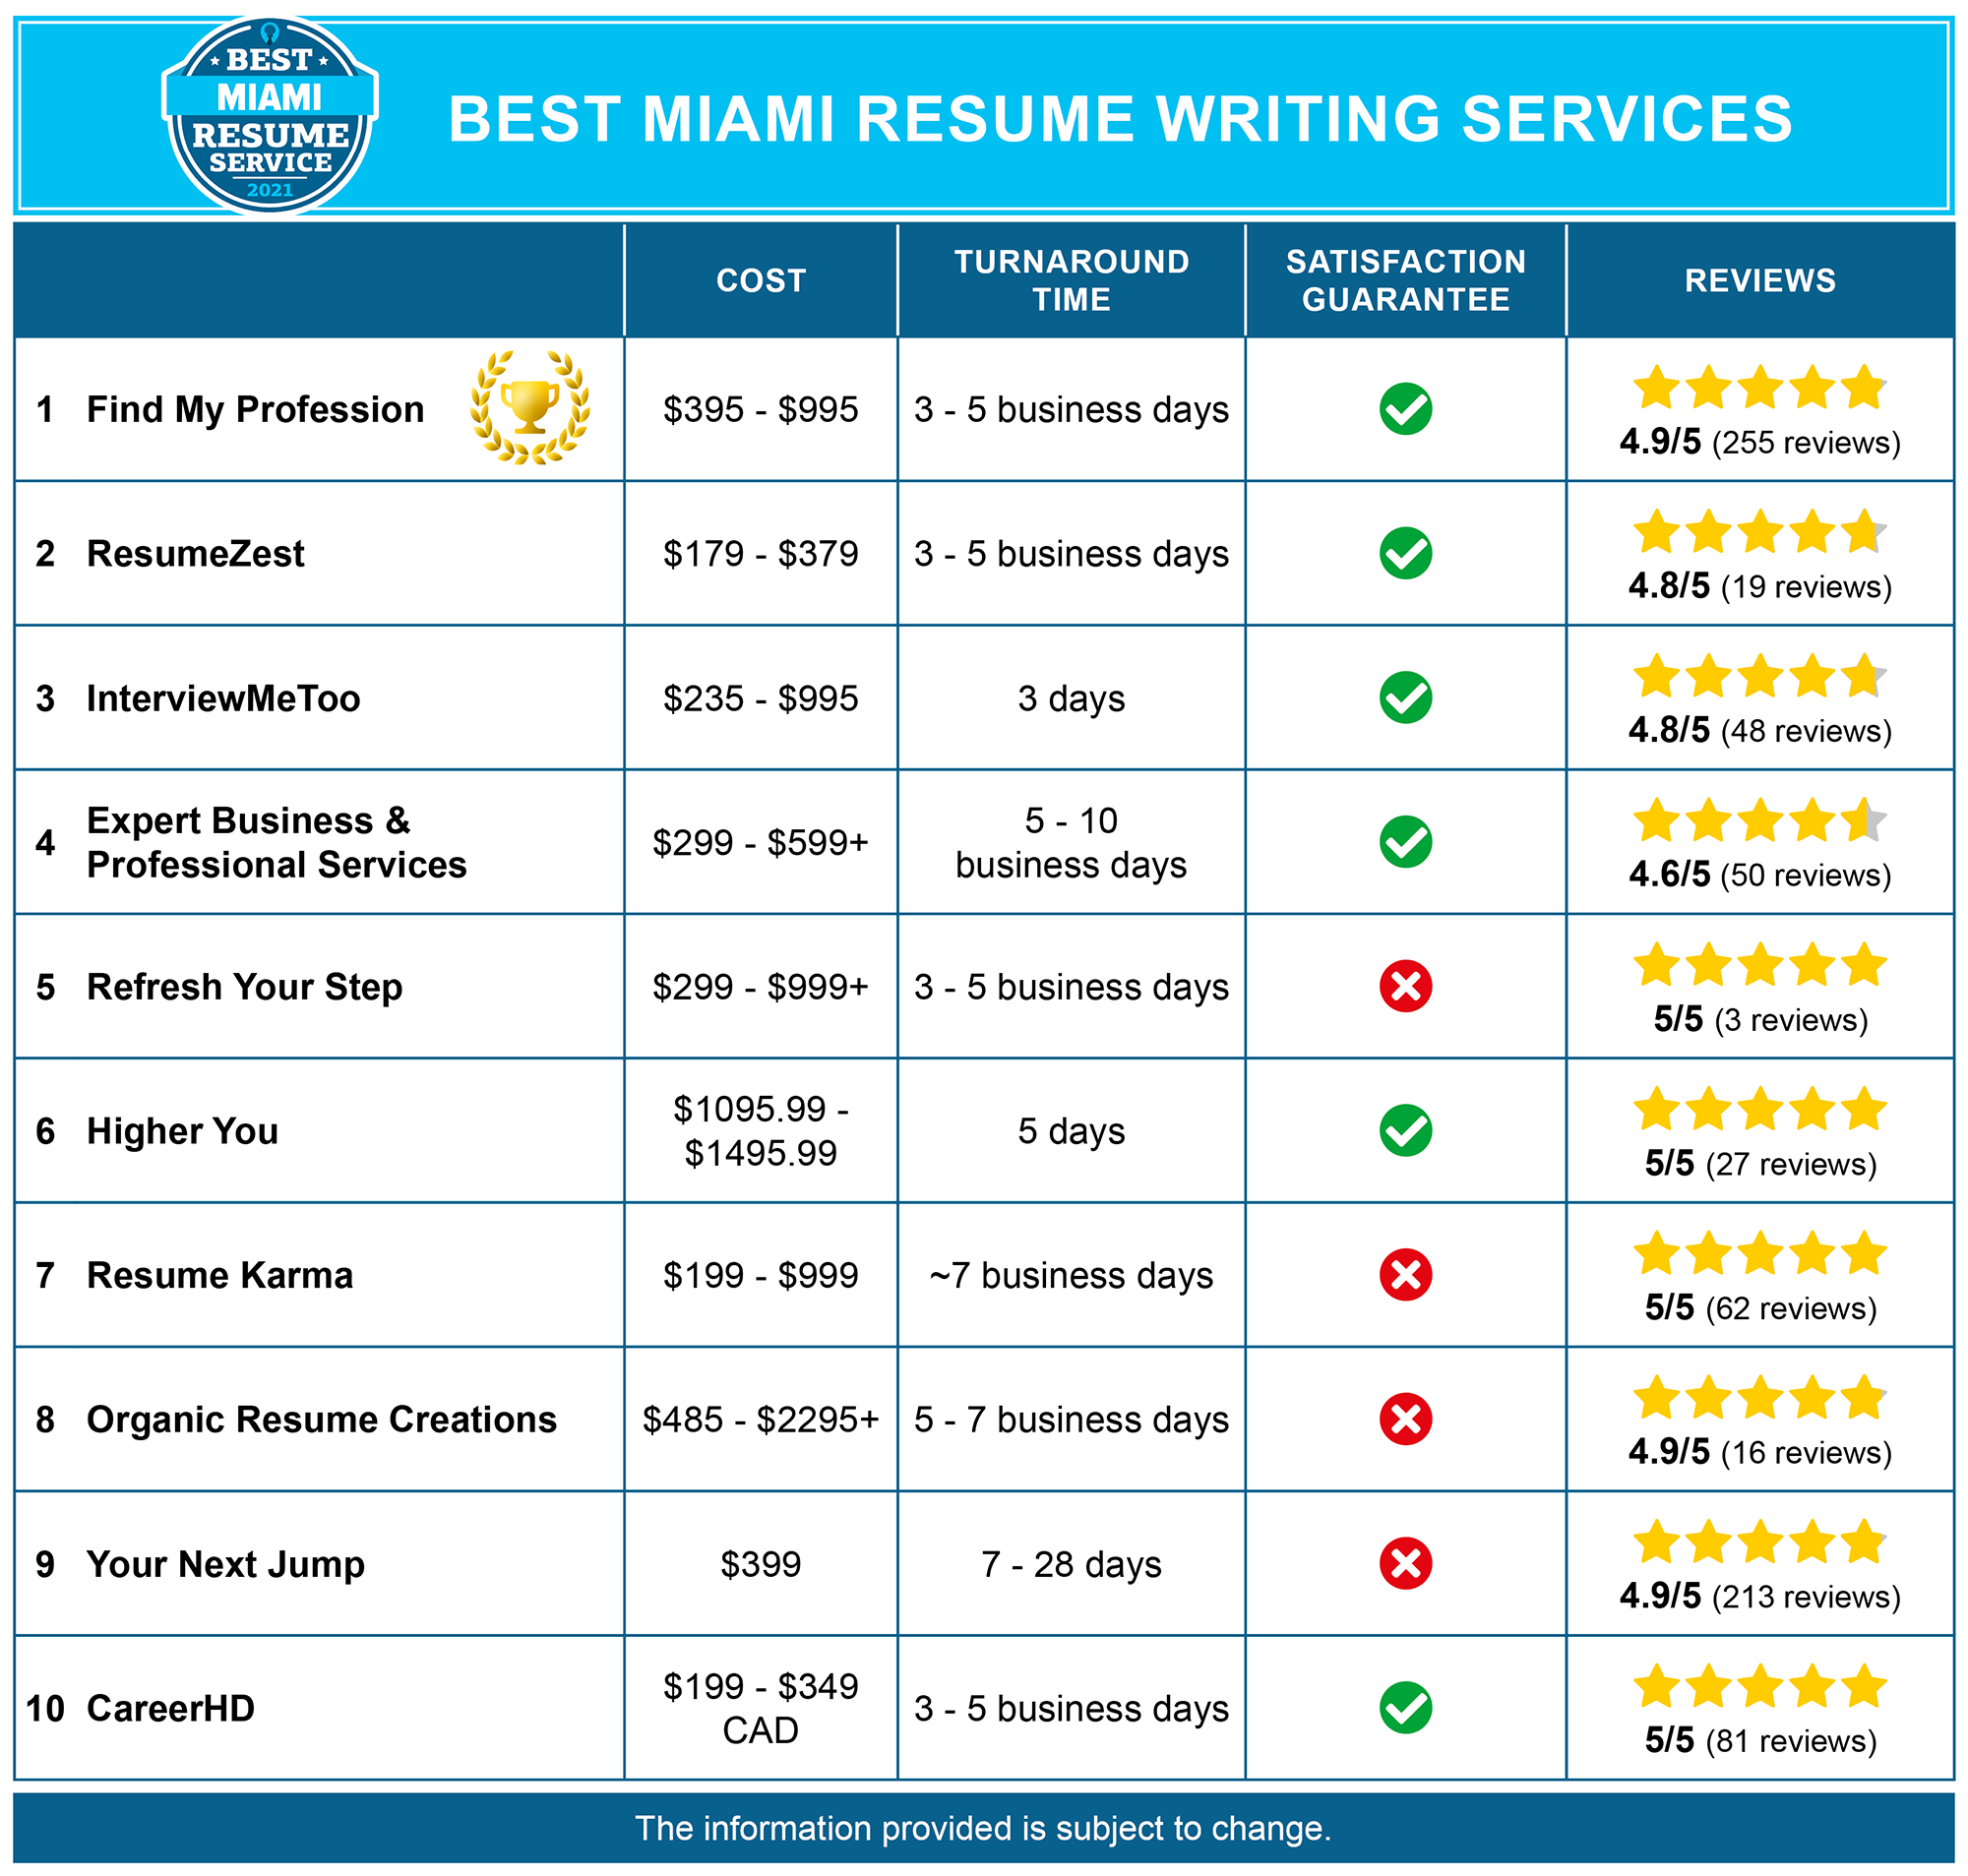 10 Best Resume Writing Services in Miami, FL